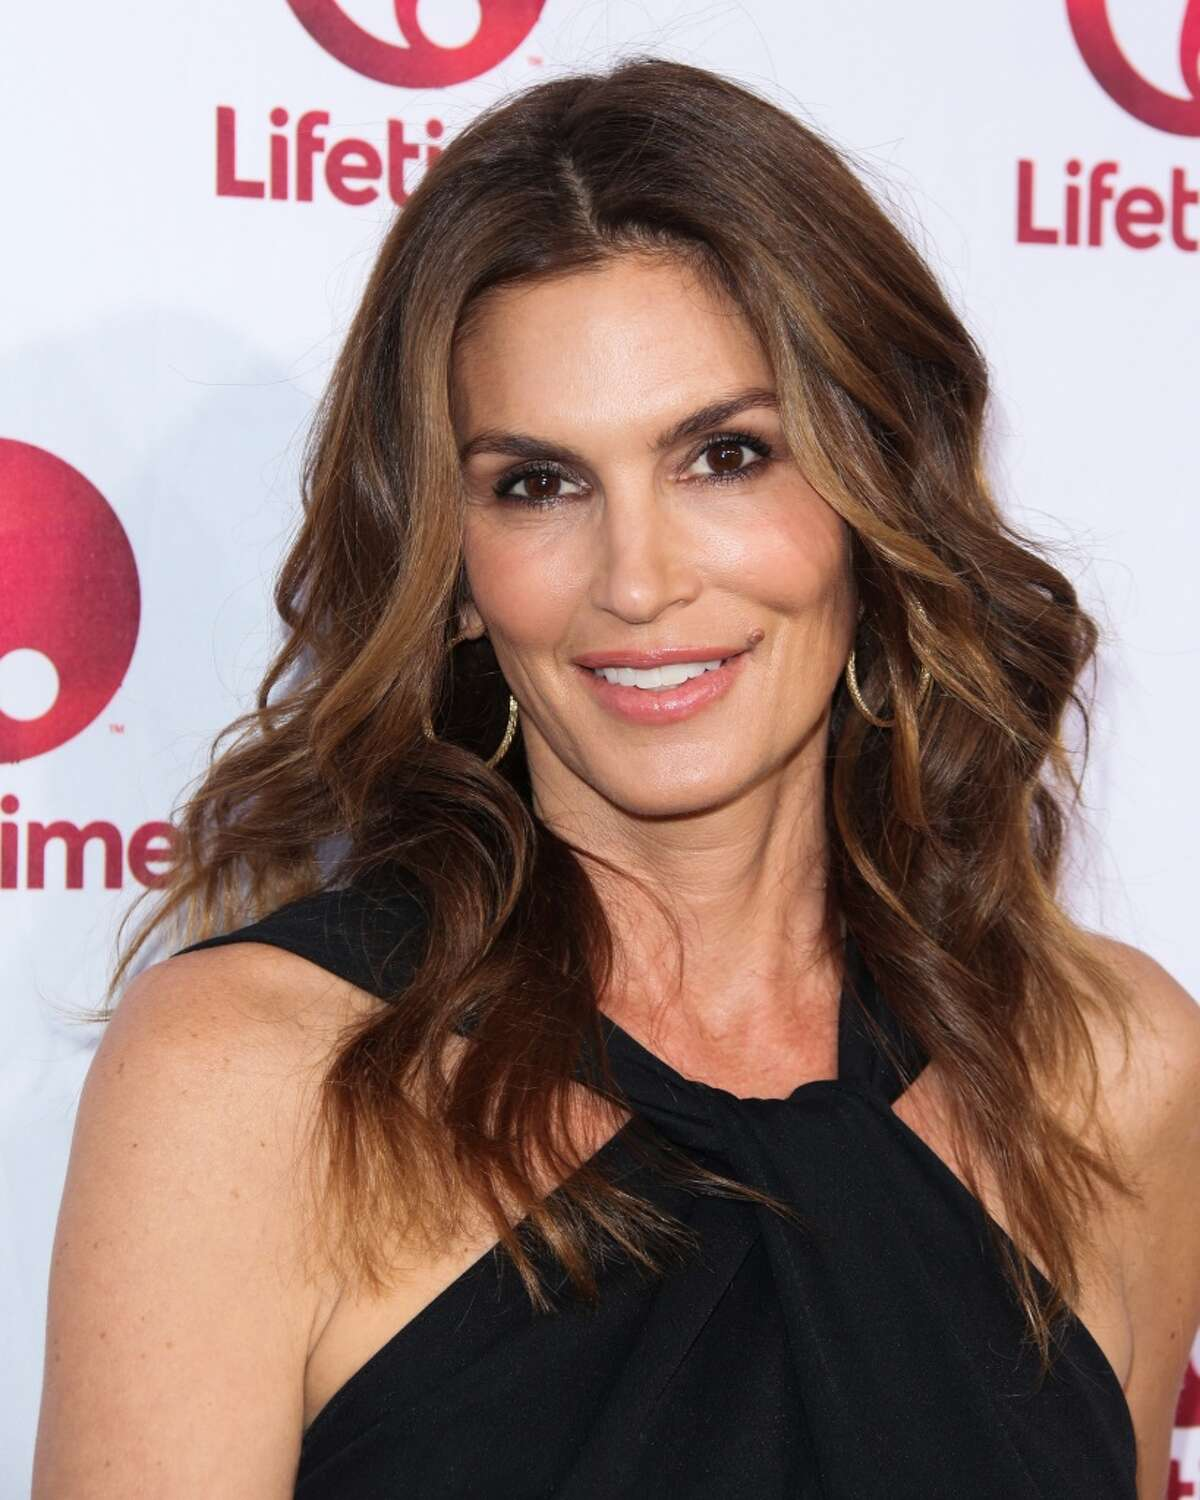 Cindy Crawford in 2014. Crawford has a line of beauty products, Meaningful Beauty, as well a furniture collection.